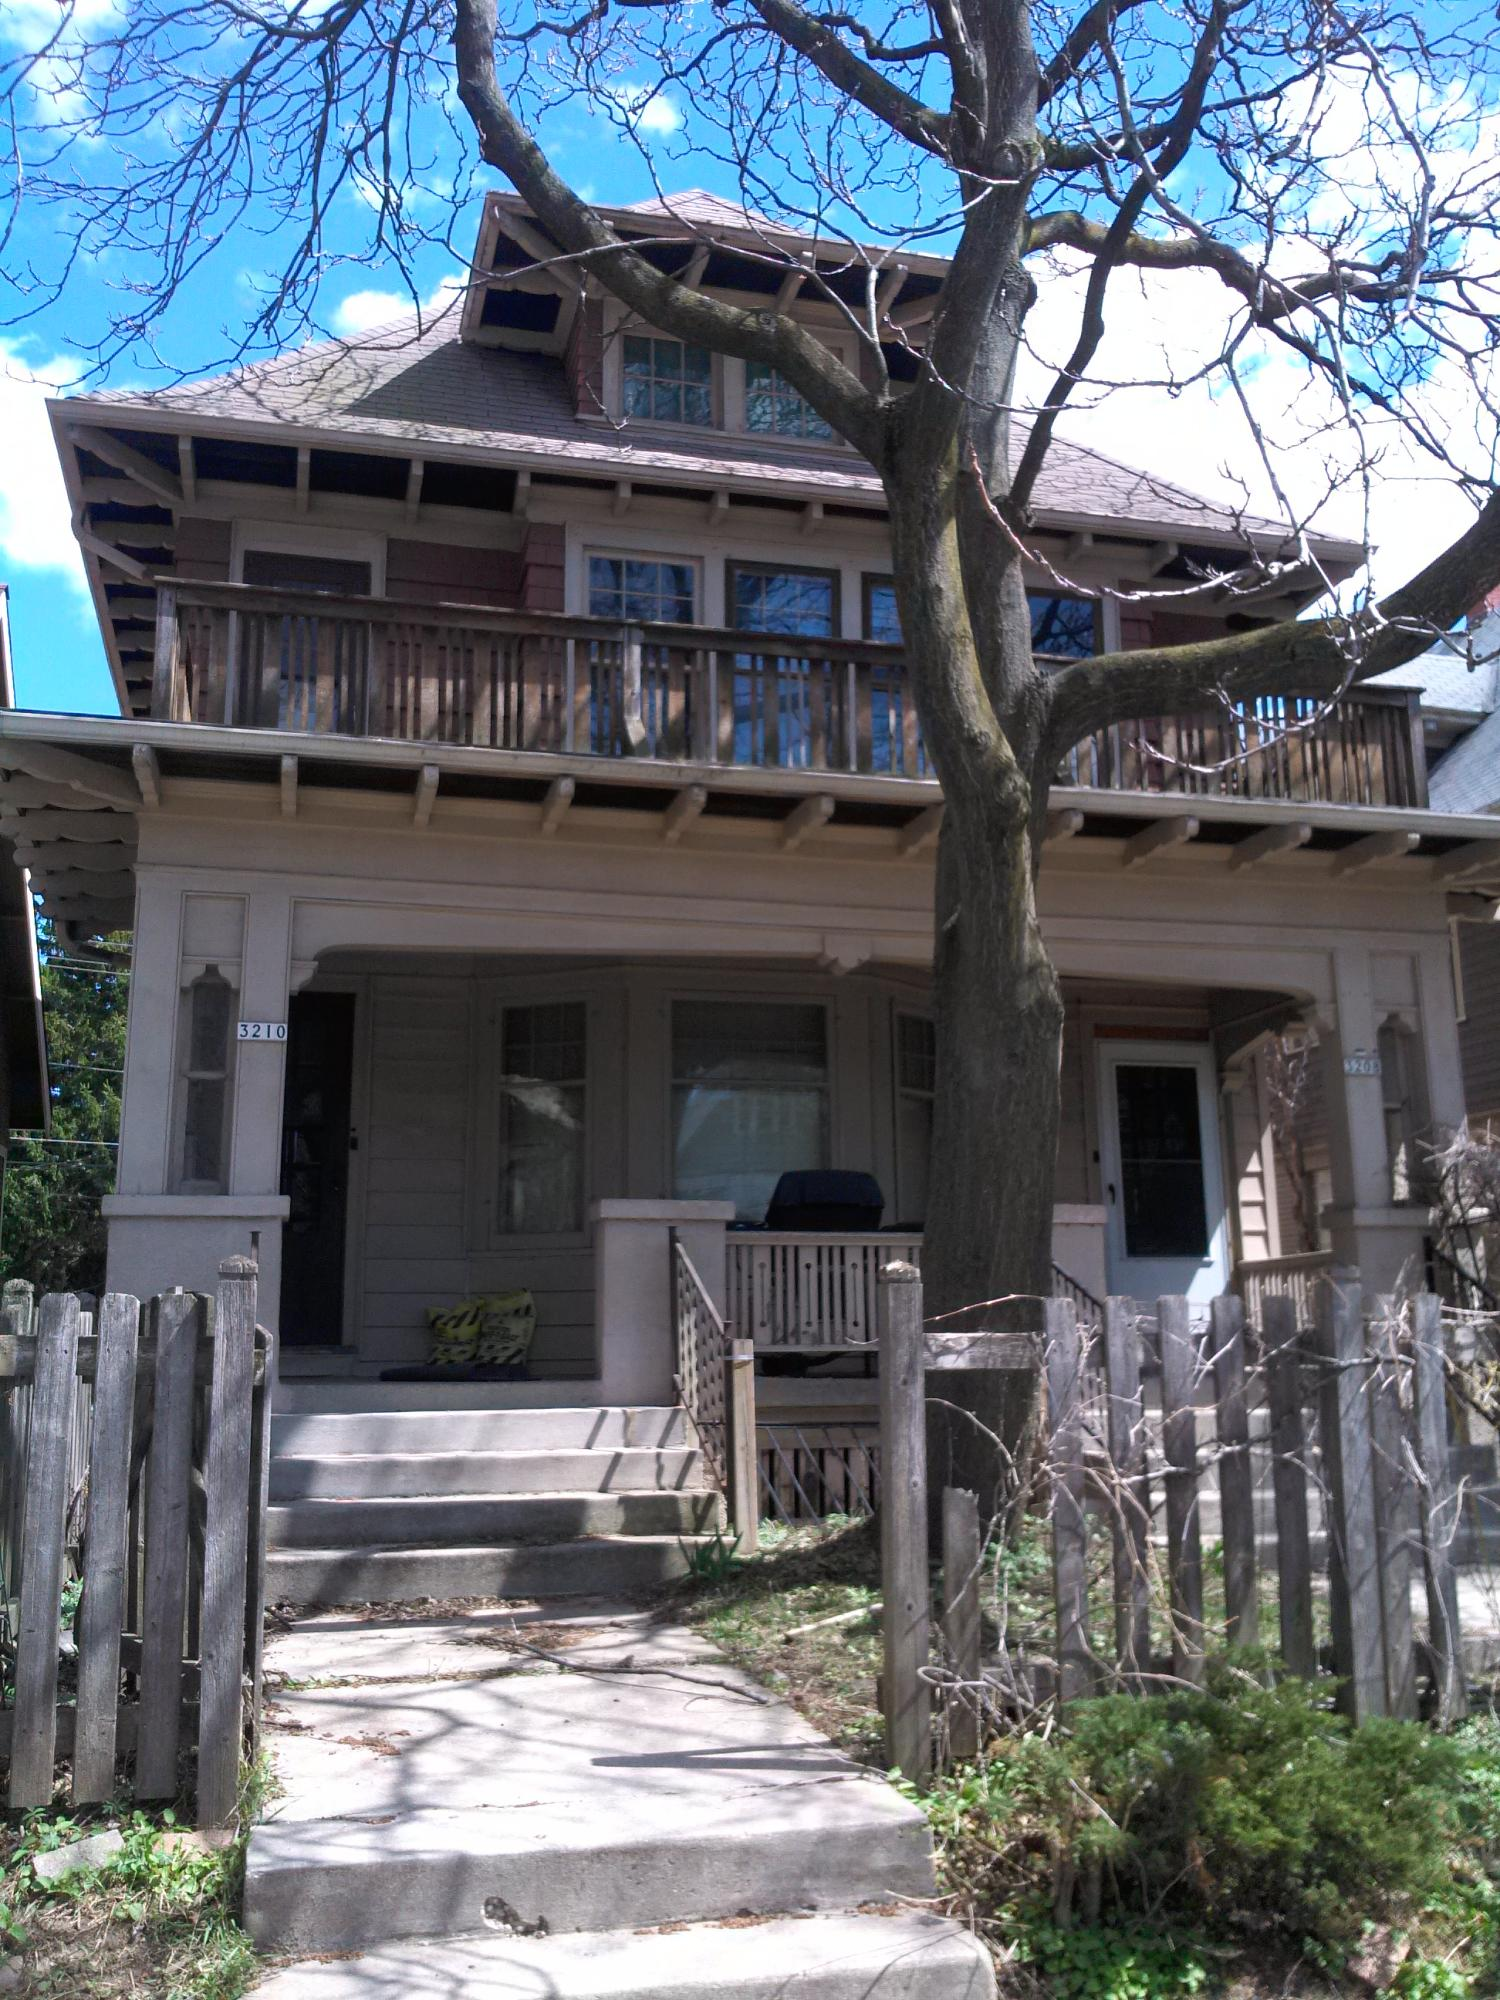 Photo of 3208 N Oakland Ave #3210, Milwaukee, WI 53211